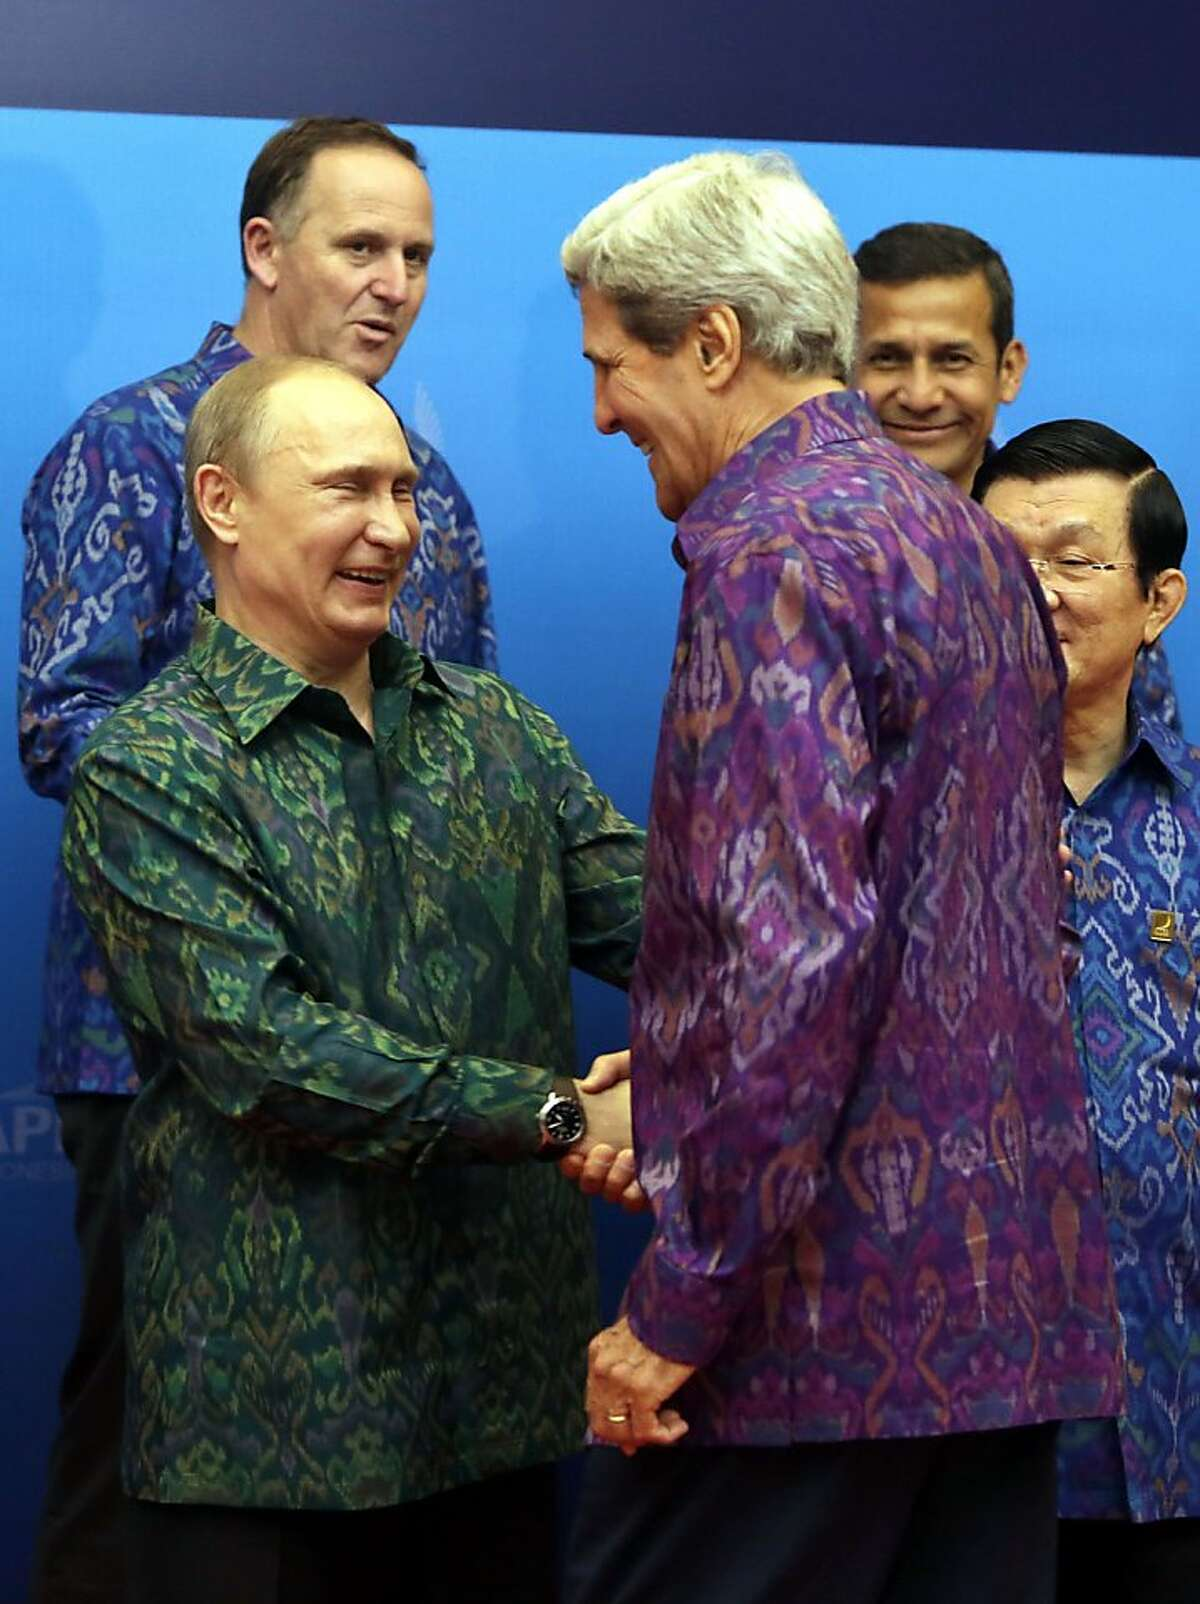 Thank you for coming to my '60s party, Mr. Secretary: Russia's President Vladimir Putin shakes hands with Secretary of State John Kerry before a gala dinner for the leaders at the Asia-Pacific Economic Cooperation Summit in Nusa Dua, Bali.